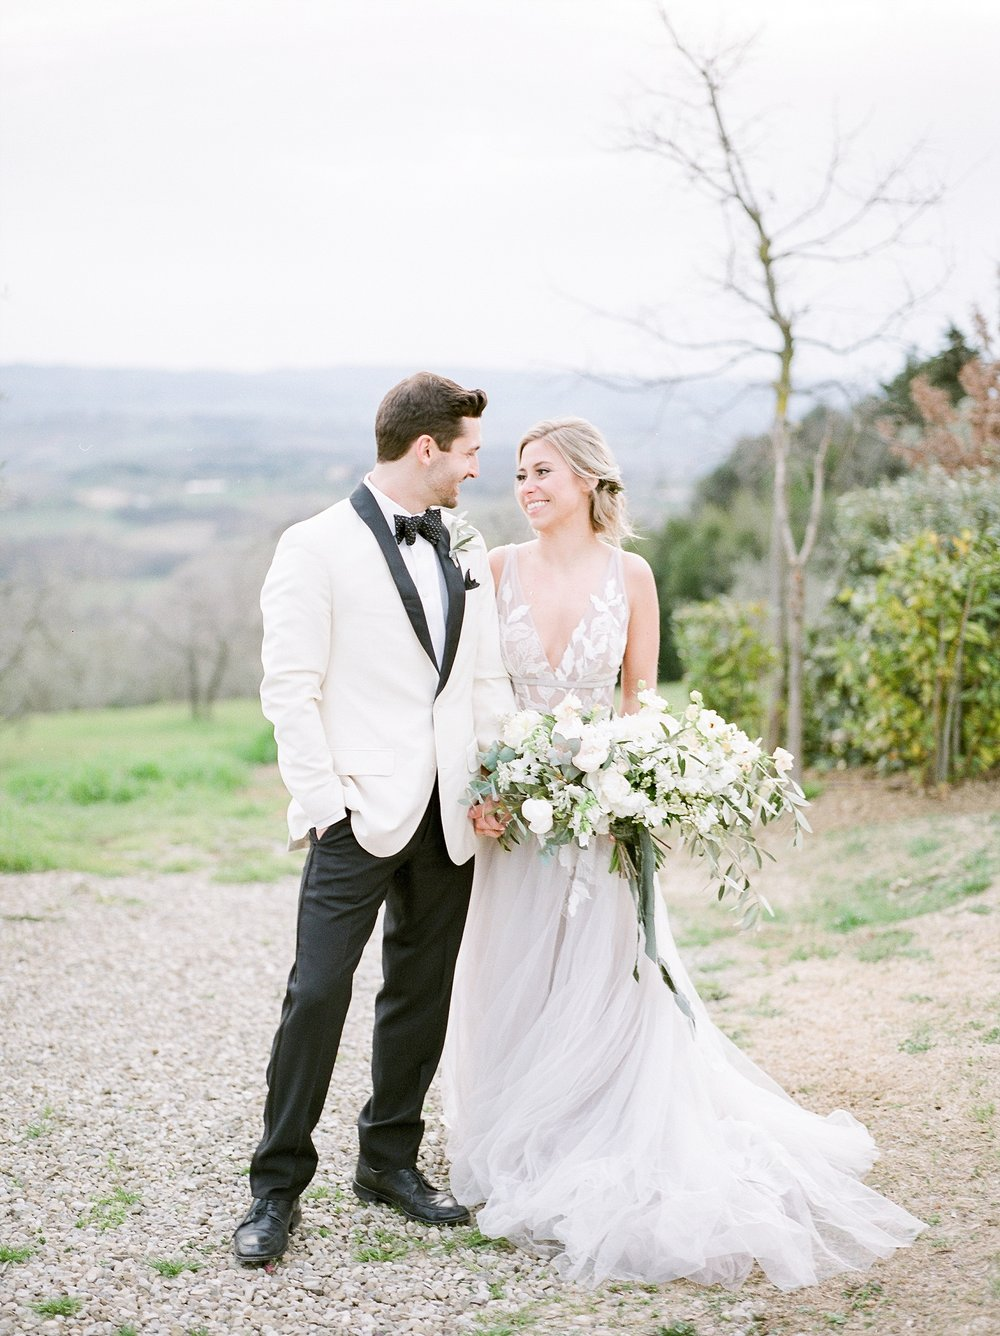 All White Destination Wedding in the Hills of Tuscany Italy at Estate Borgo Petrognano by Kelsi Kliethermes Photography_0003.jpg